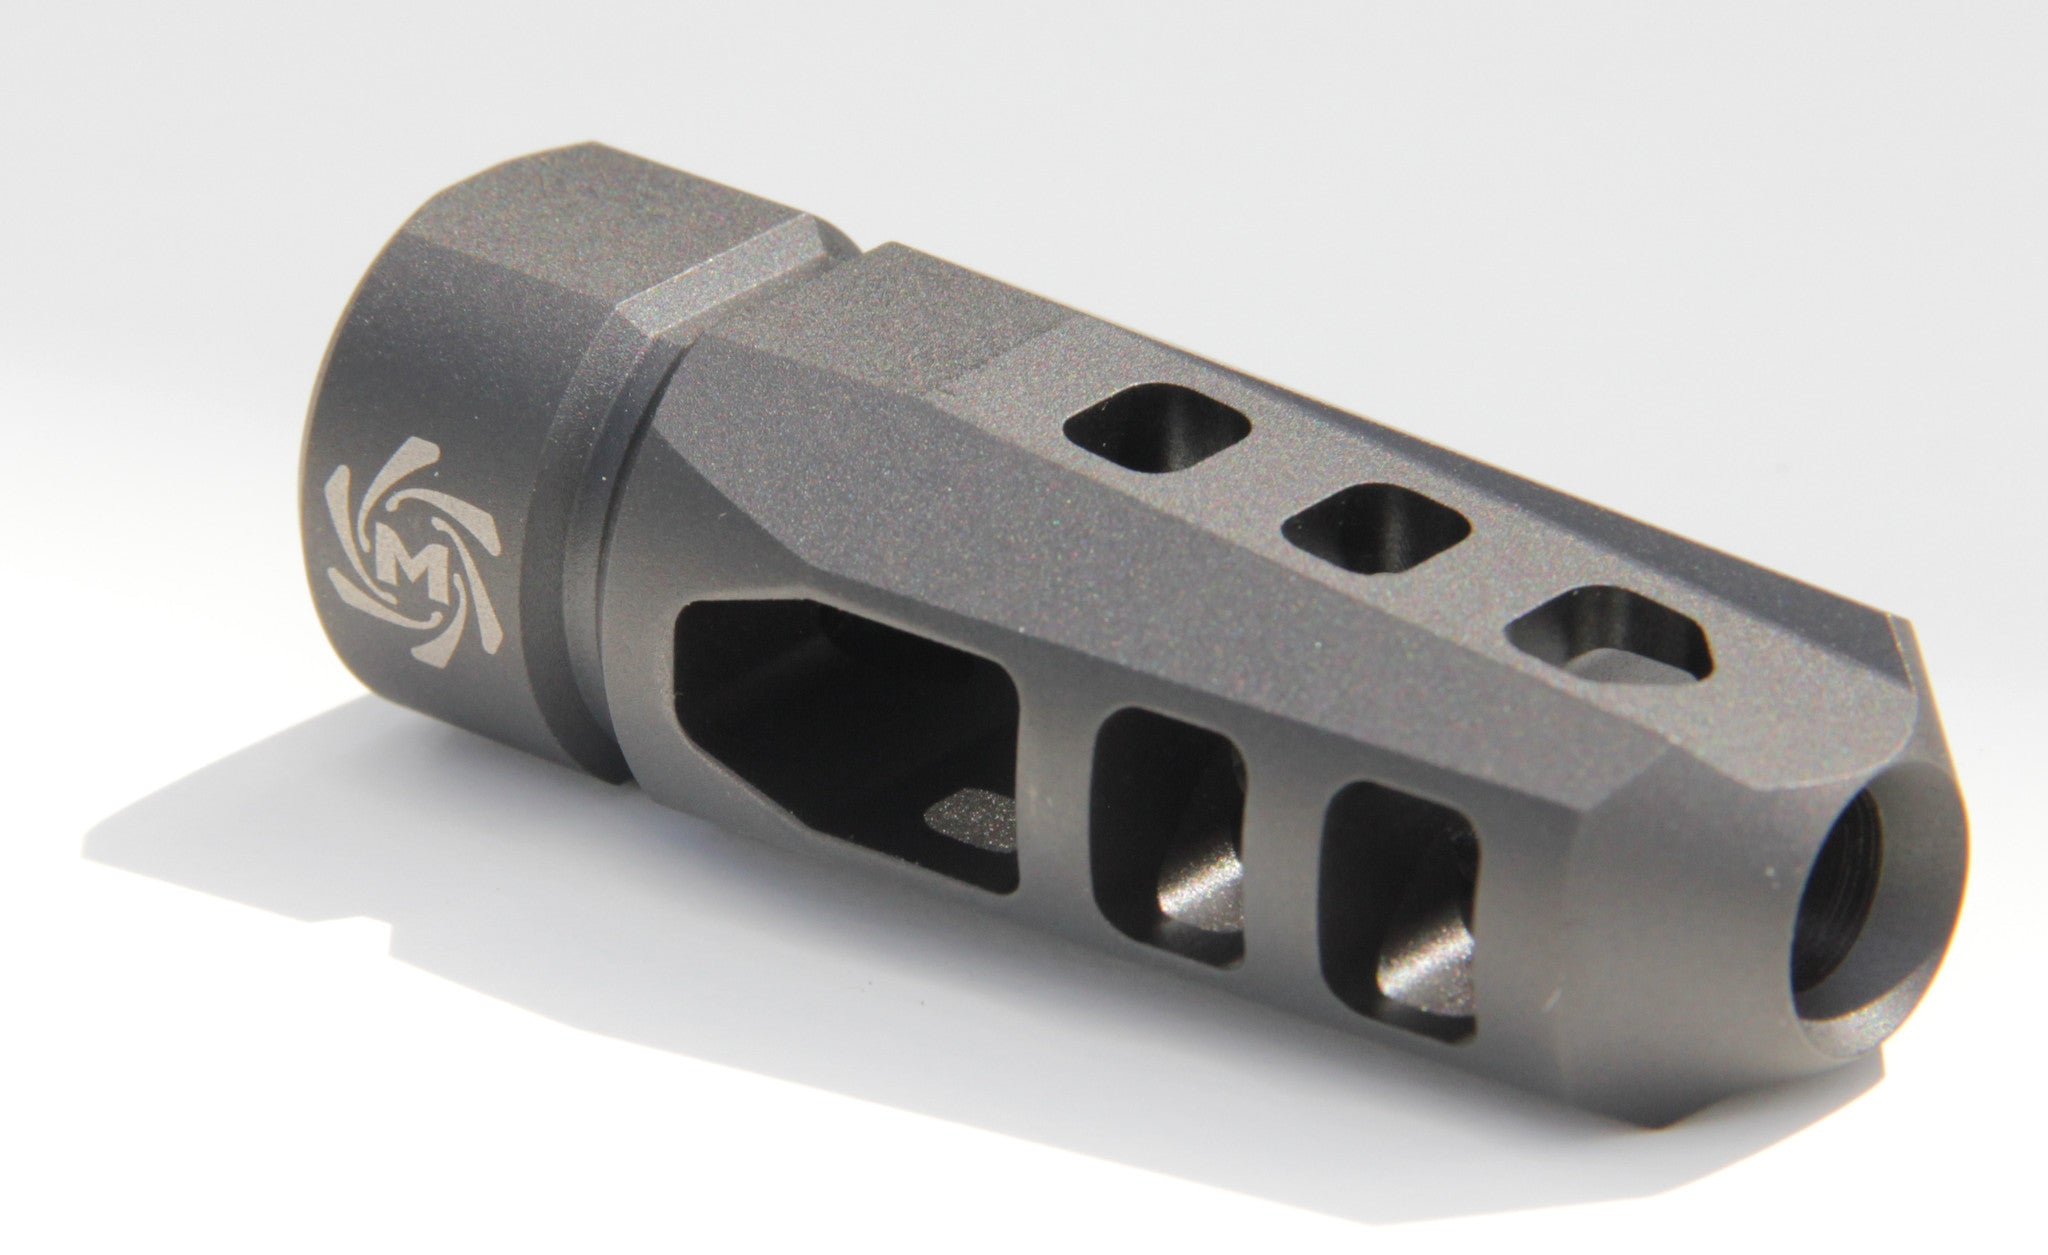 Mechforce Muzzle Brake Youtube Video Review